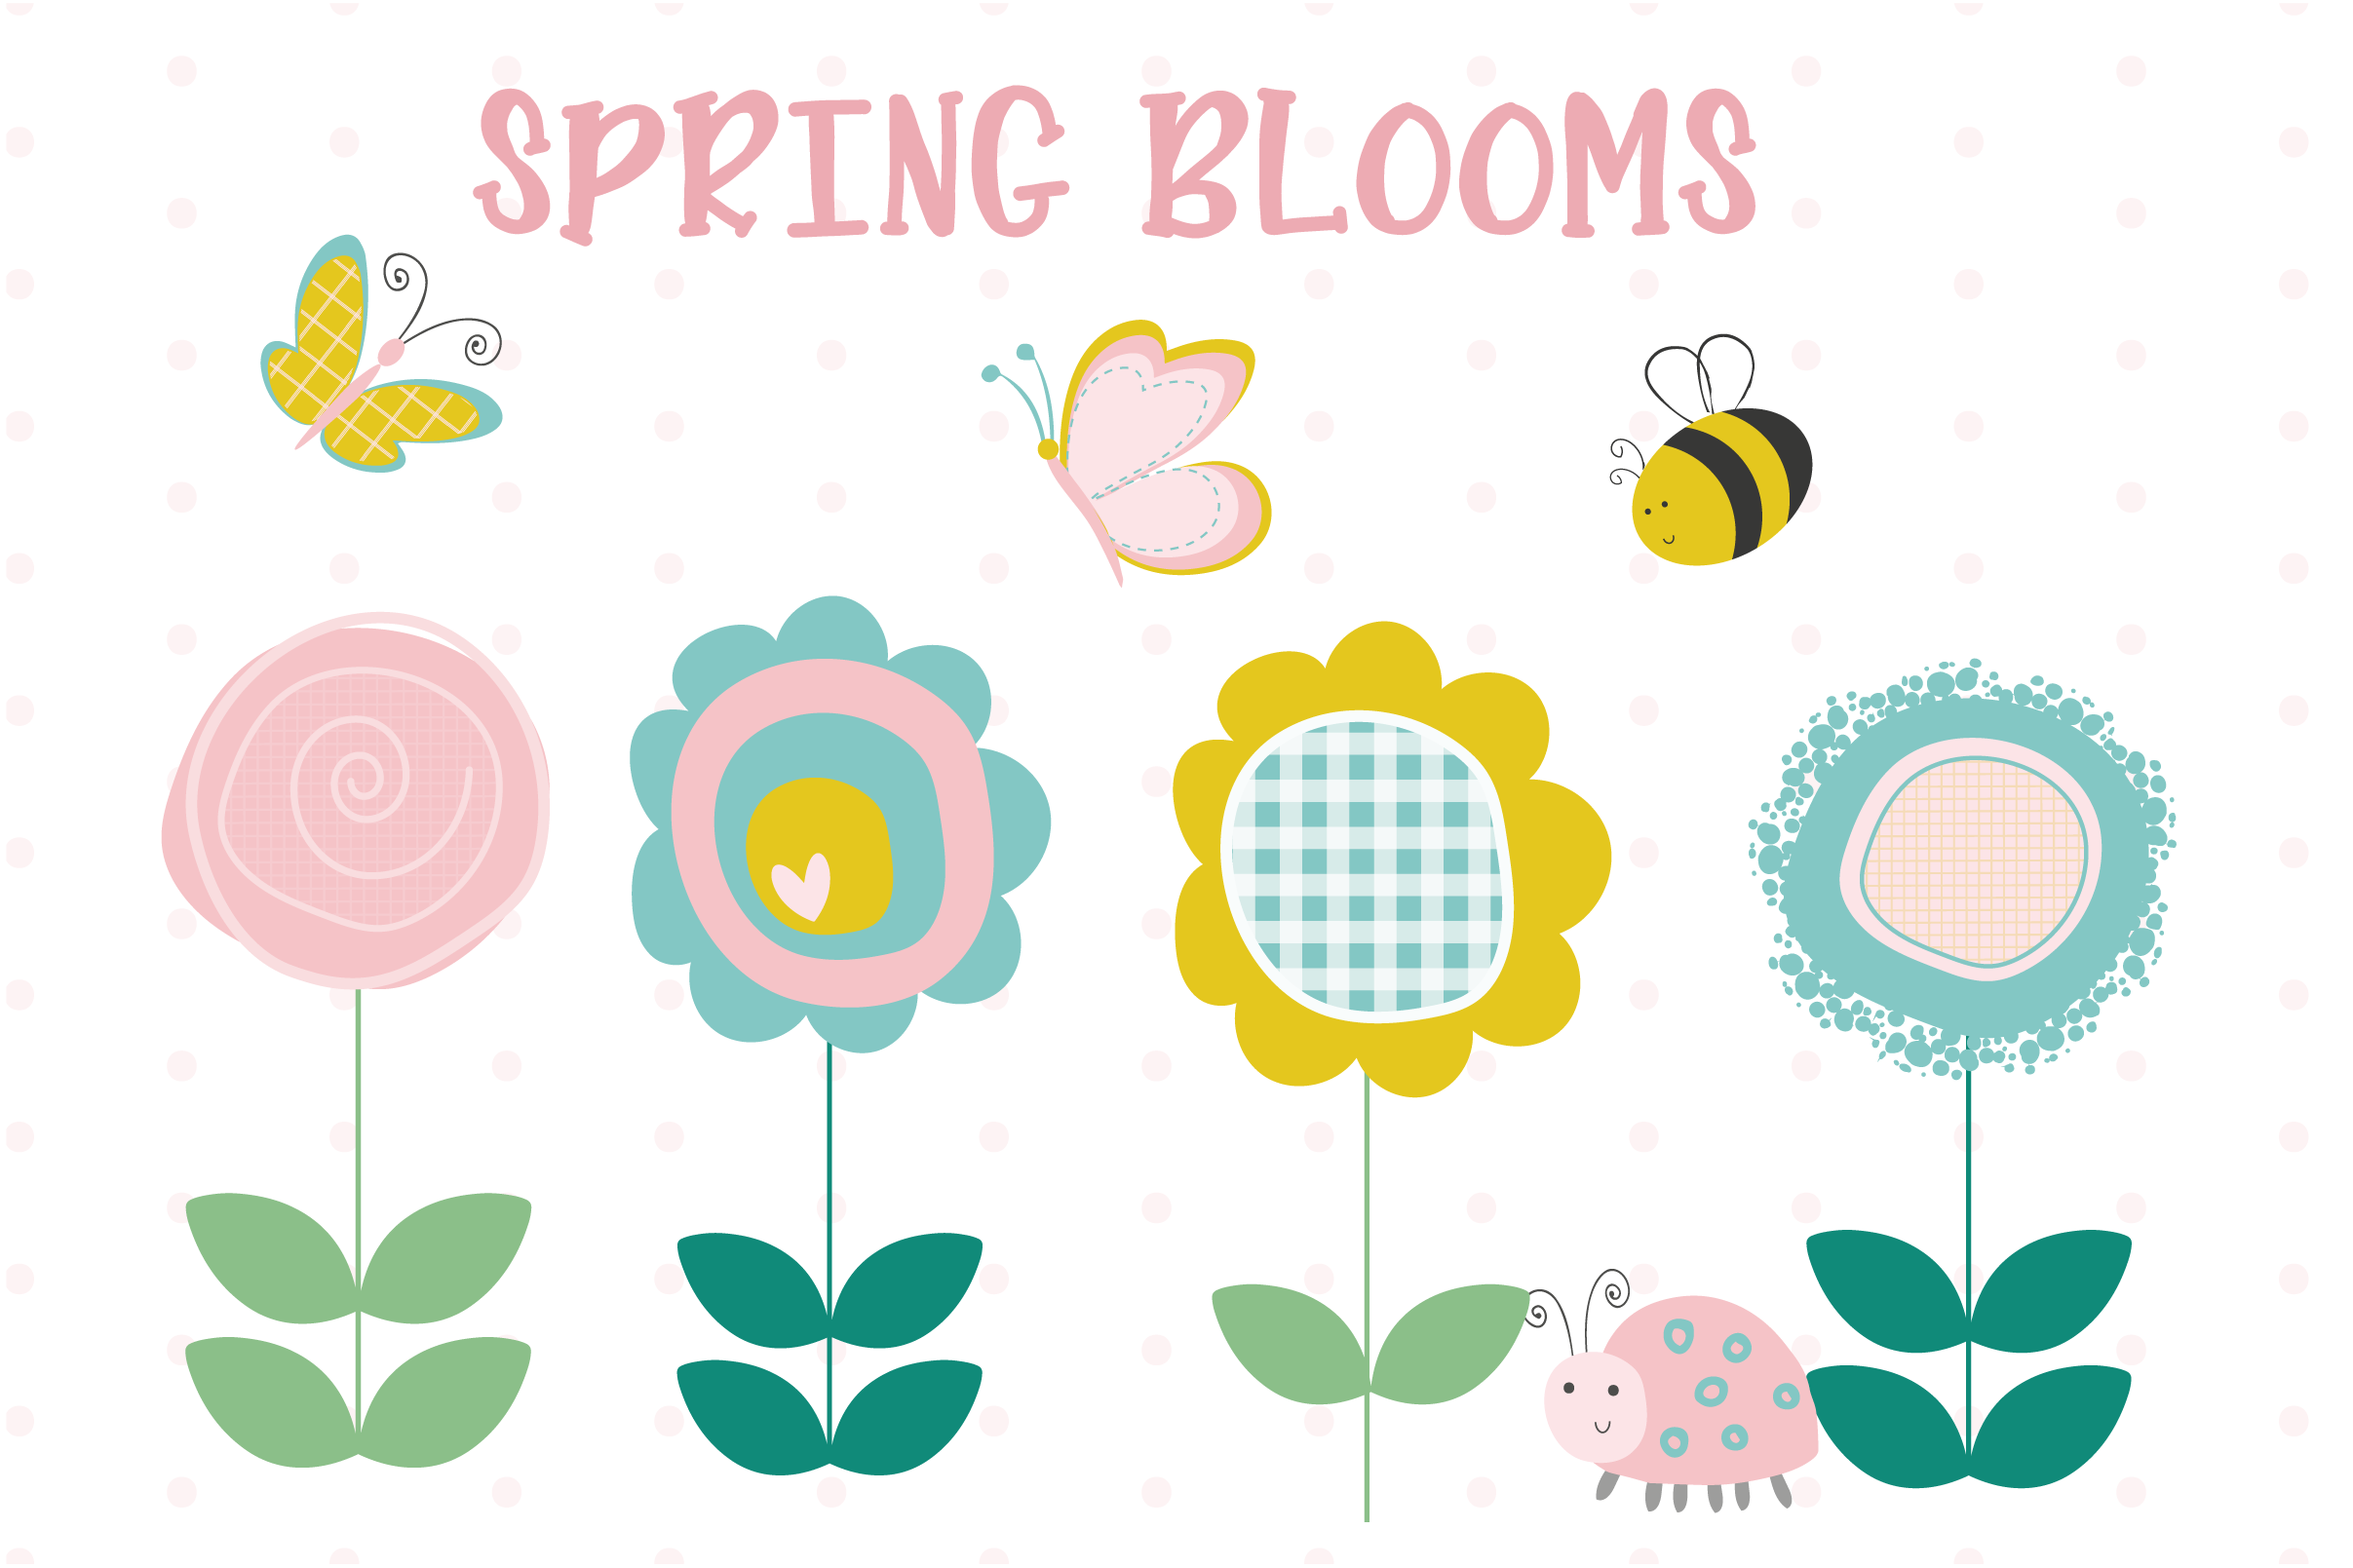 Download Free Spring Blooms Graphic By Poppymoondesign Creative Fabrica for Cricut Explore, Silhouette and other cutting machines.